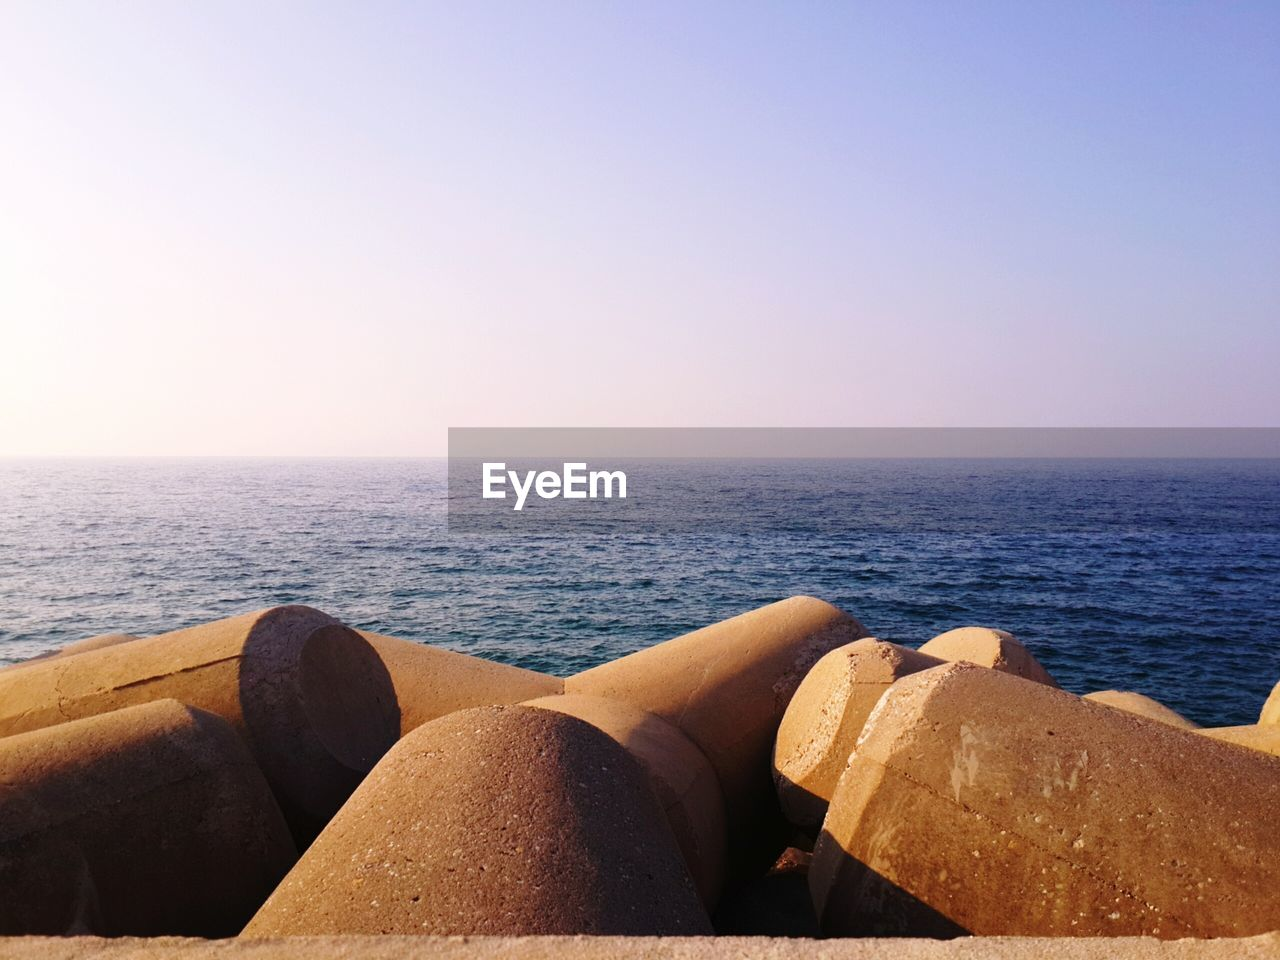 sea, horizon over water, water, nature, scenics, tranquility, tranquil scene, outdoors, beauty in nature, clear sky, day, beach, no people, sky, close-up, pebble beach